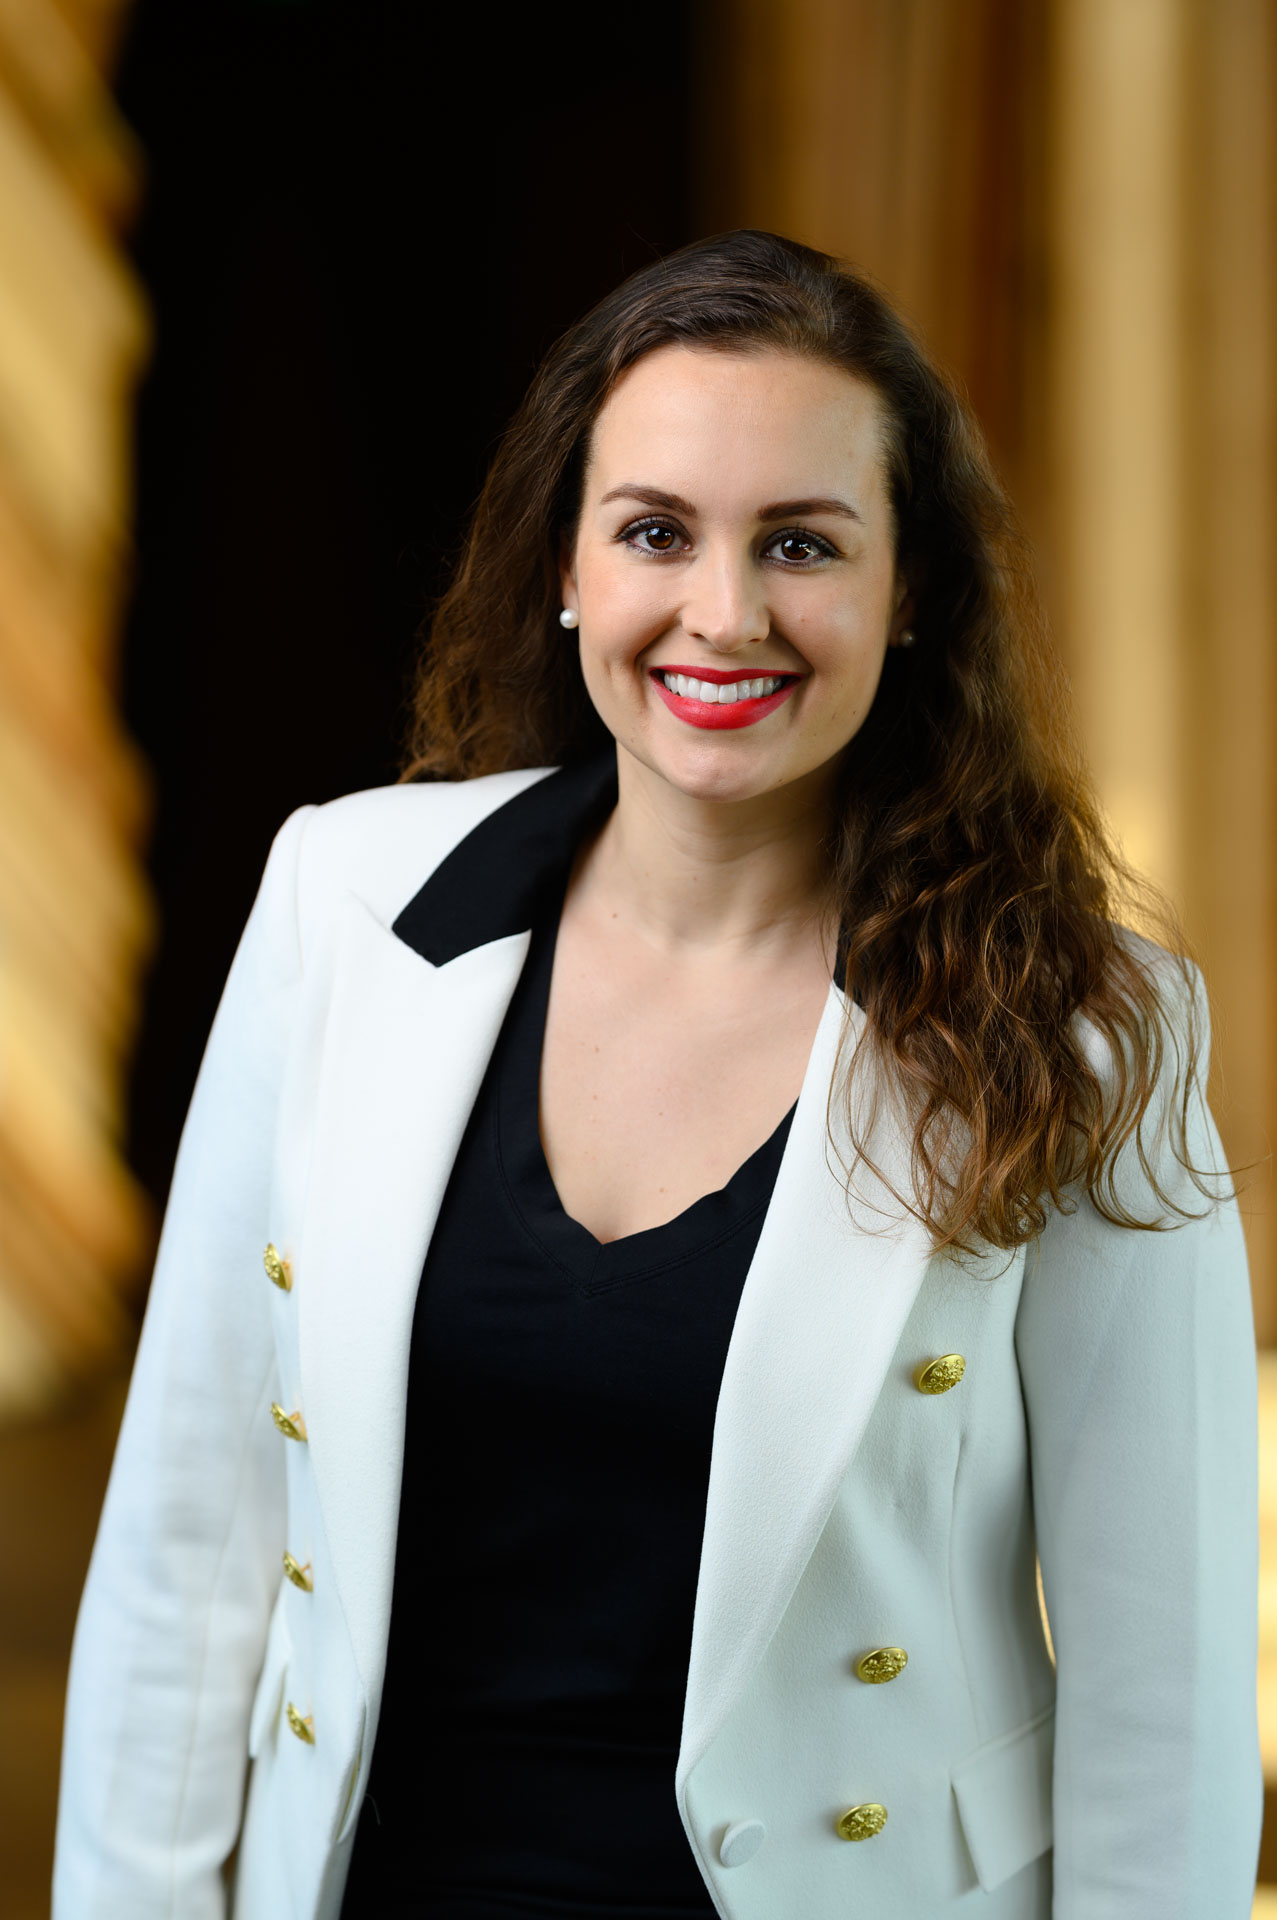 Business portrait of a young woman in a white suit jacket